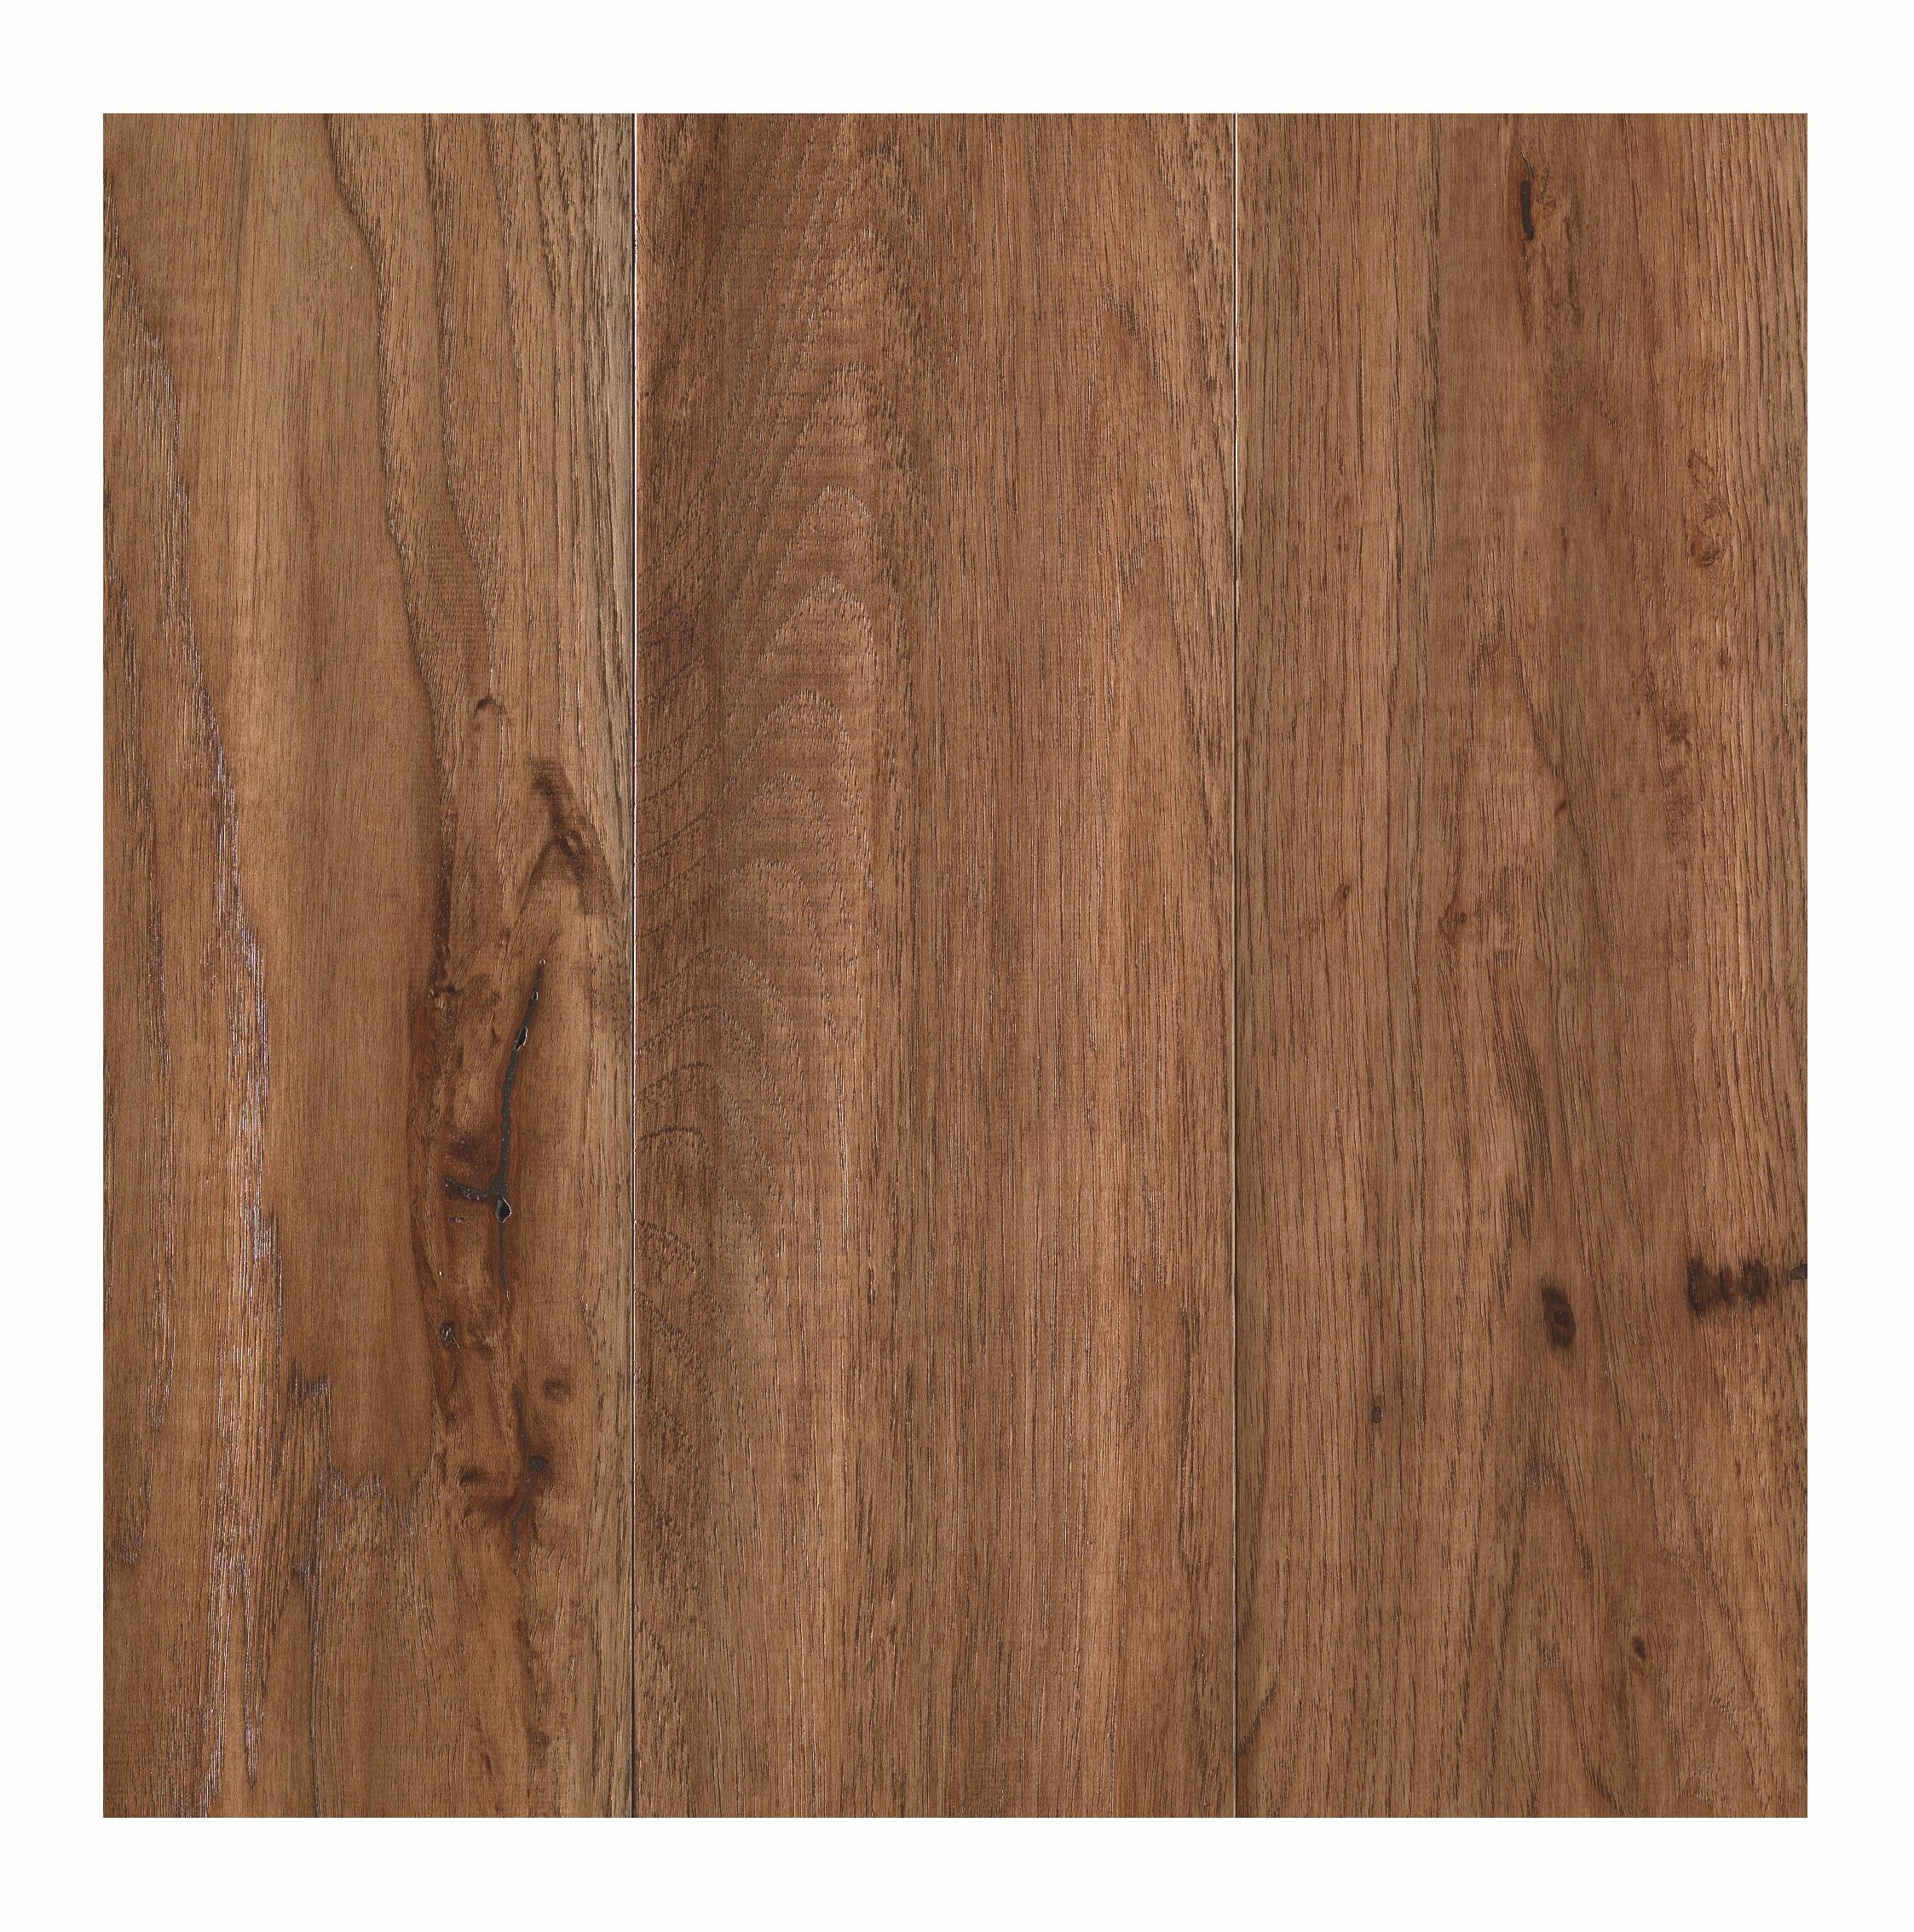 "2020 Solandra Oak 3/4"" Thick X 5"" Wide X 73"" Length Solid Hardwood Flooring in Shaw Dining Tables, Blonde Oak"